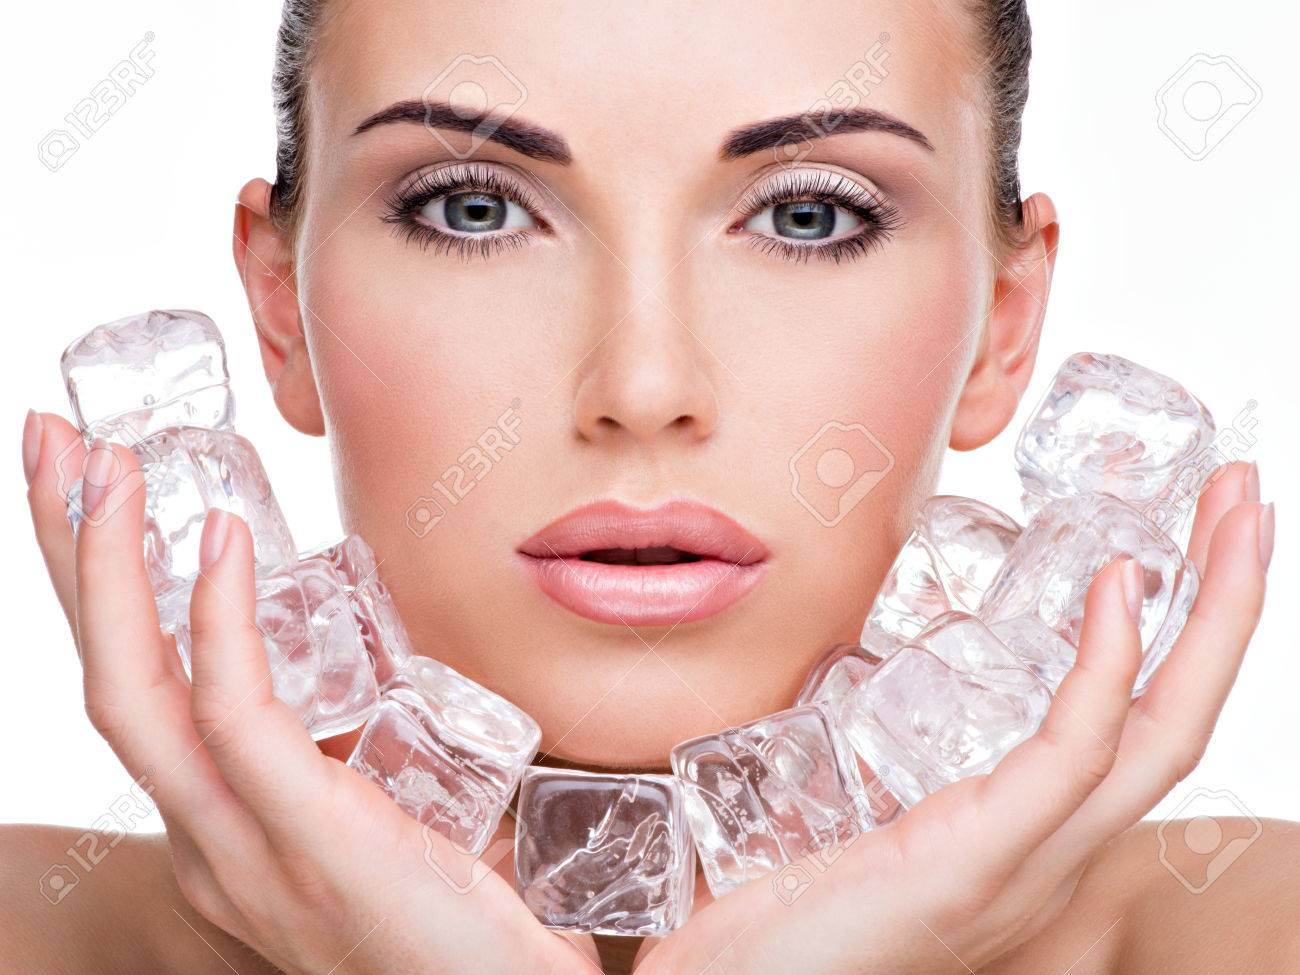 Beautiful young woman applies the ice to face. Skin care concept. Banque d'images - 53559271